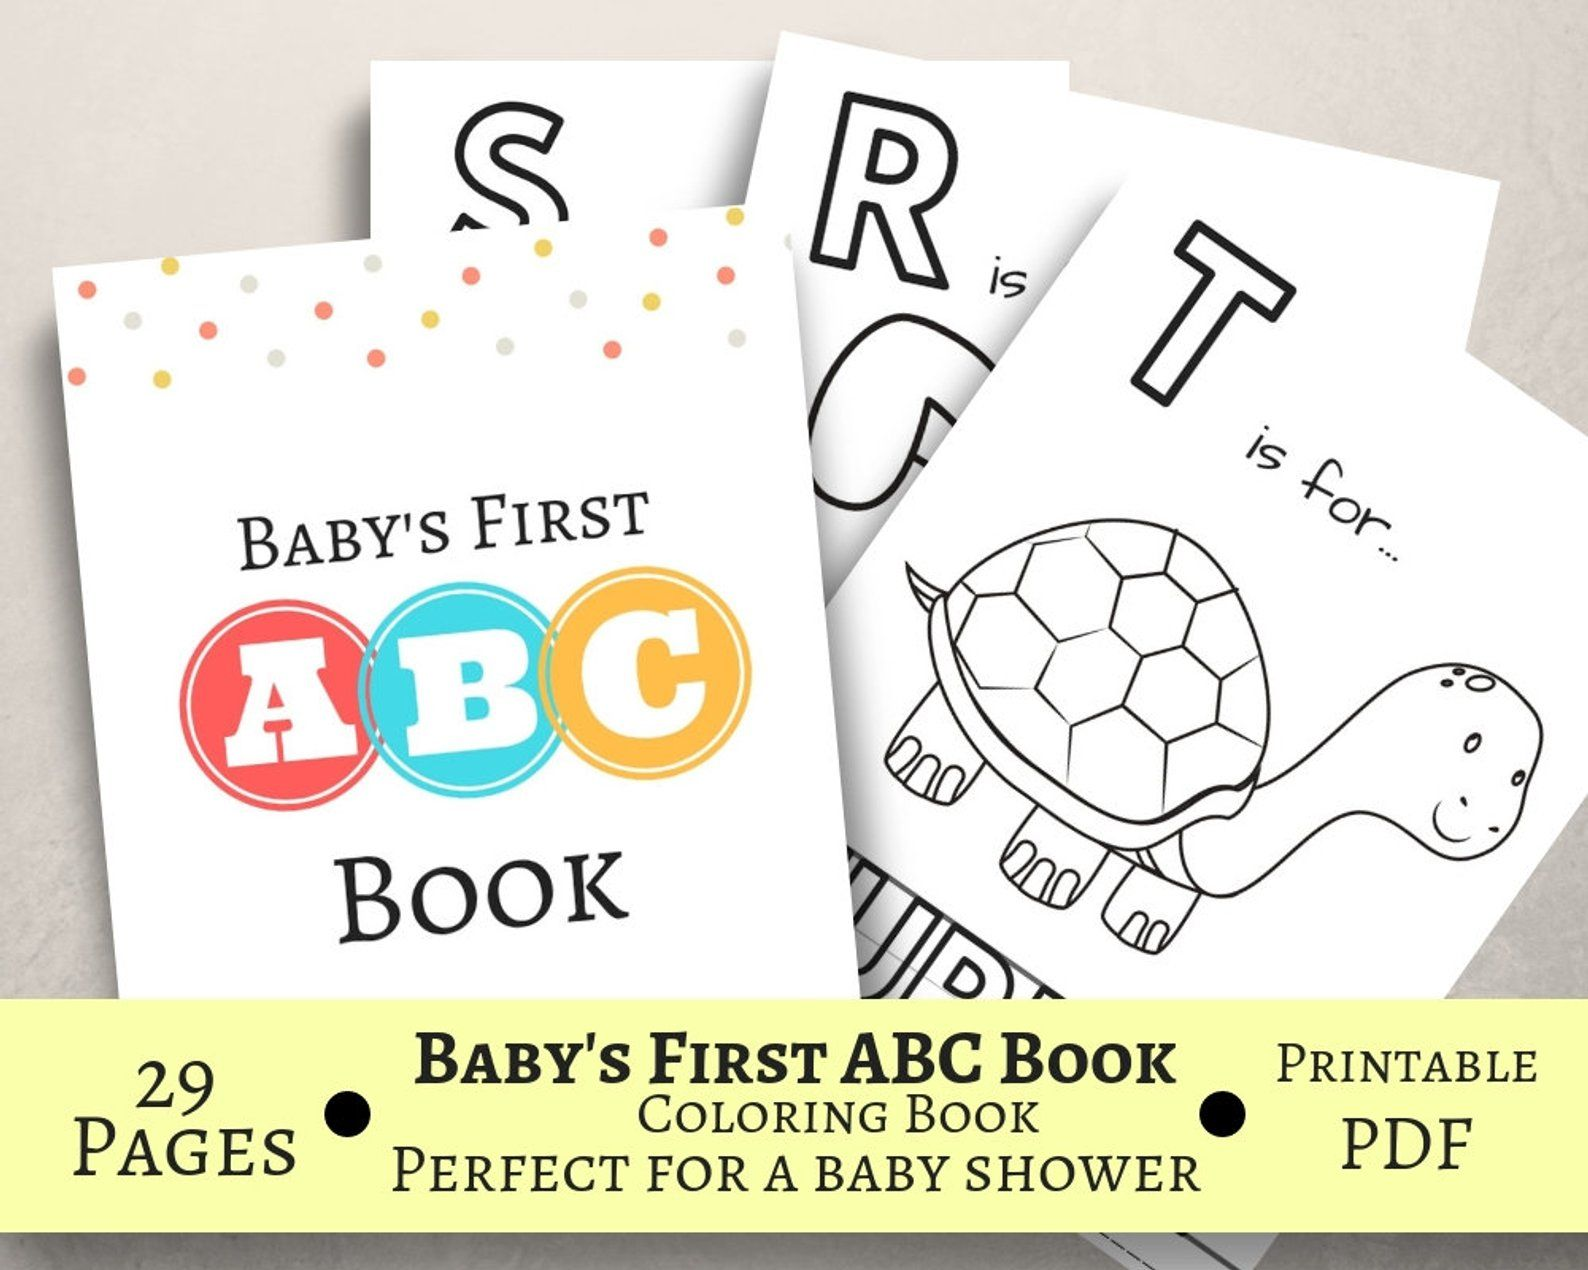 Baby S First Abc Book Baby Shower Game Coloring Book Printable Pdf Letter Size Prefilled Coloring Pages Baby Shower Book Abc Book Baby Shower Activities [ 1270 x 1588 Pixel ]